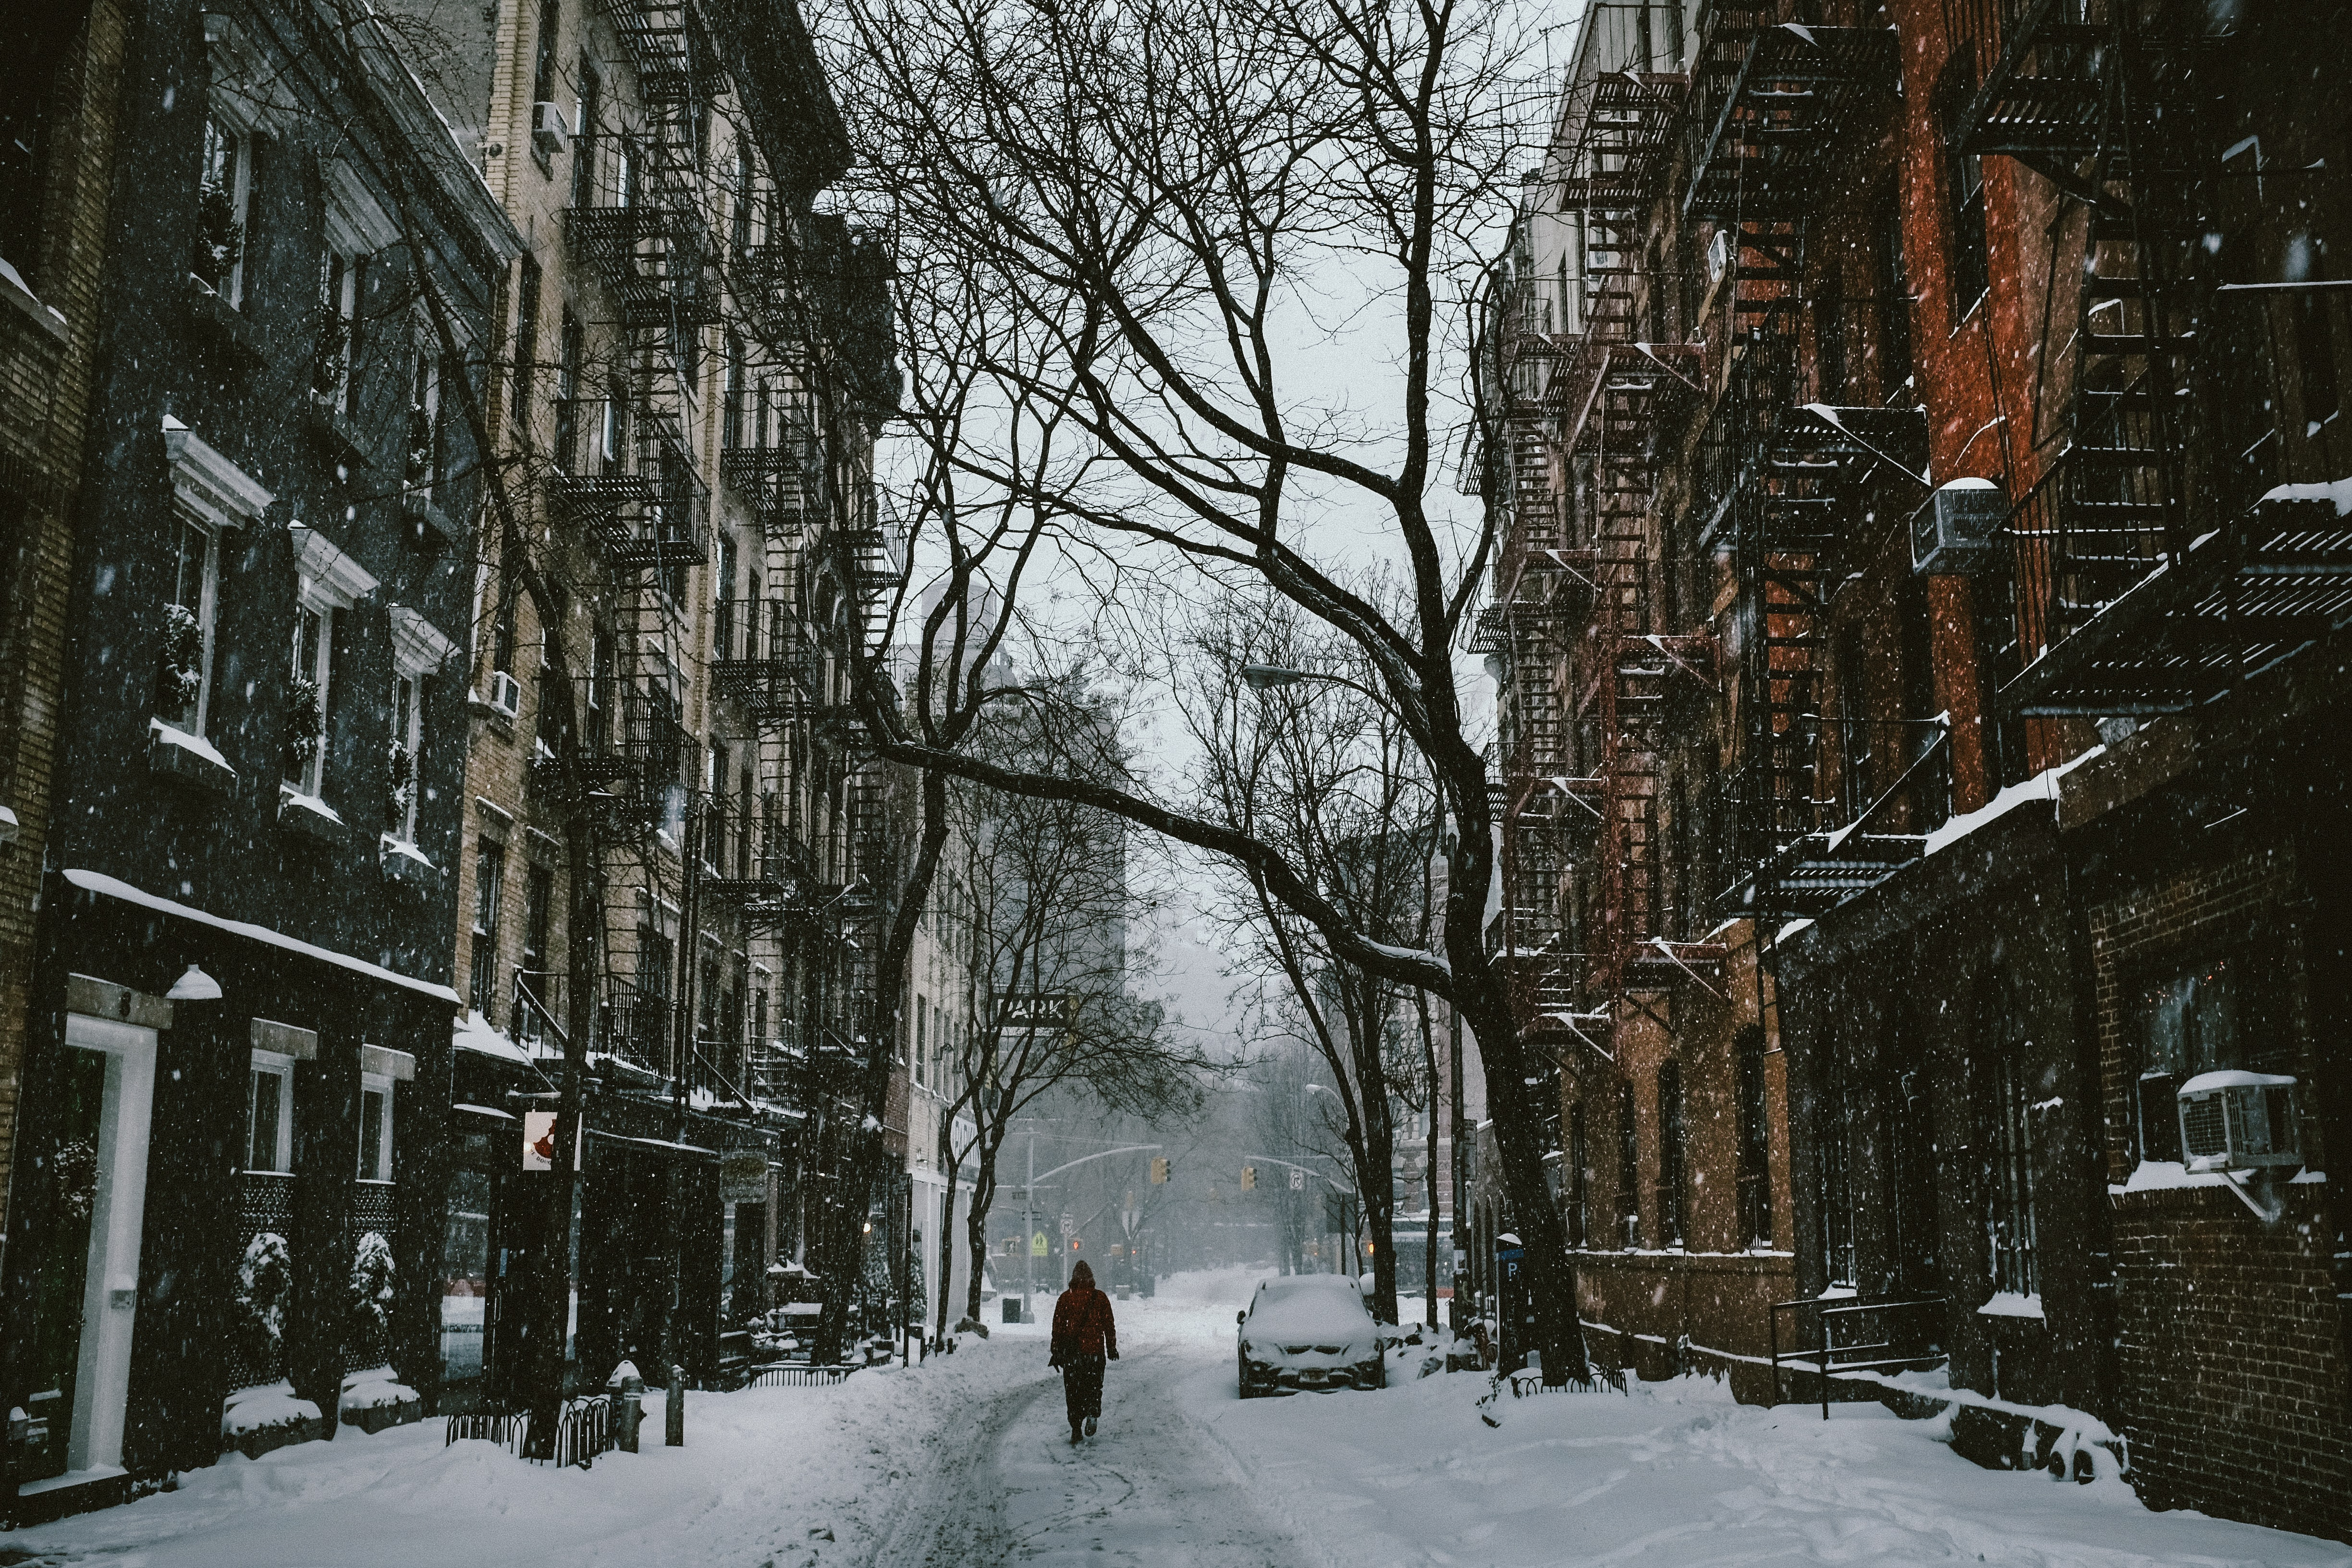 A person walking down the snow covered street surrounded by houses and trees in the city.